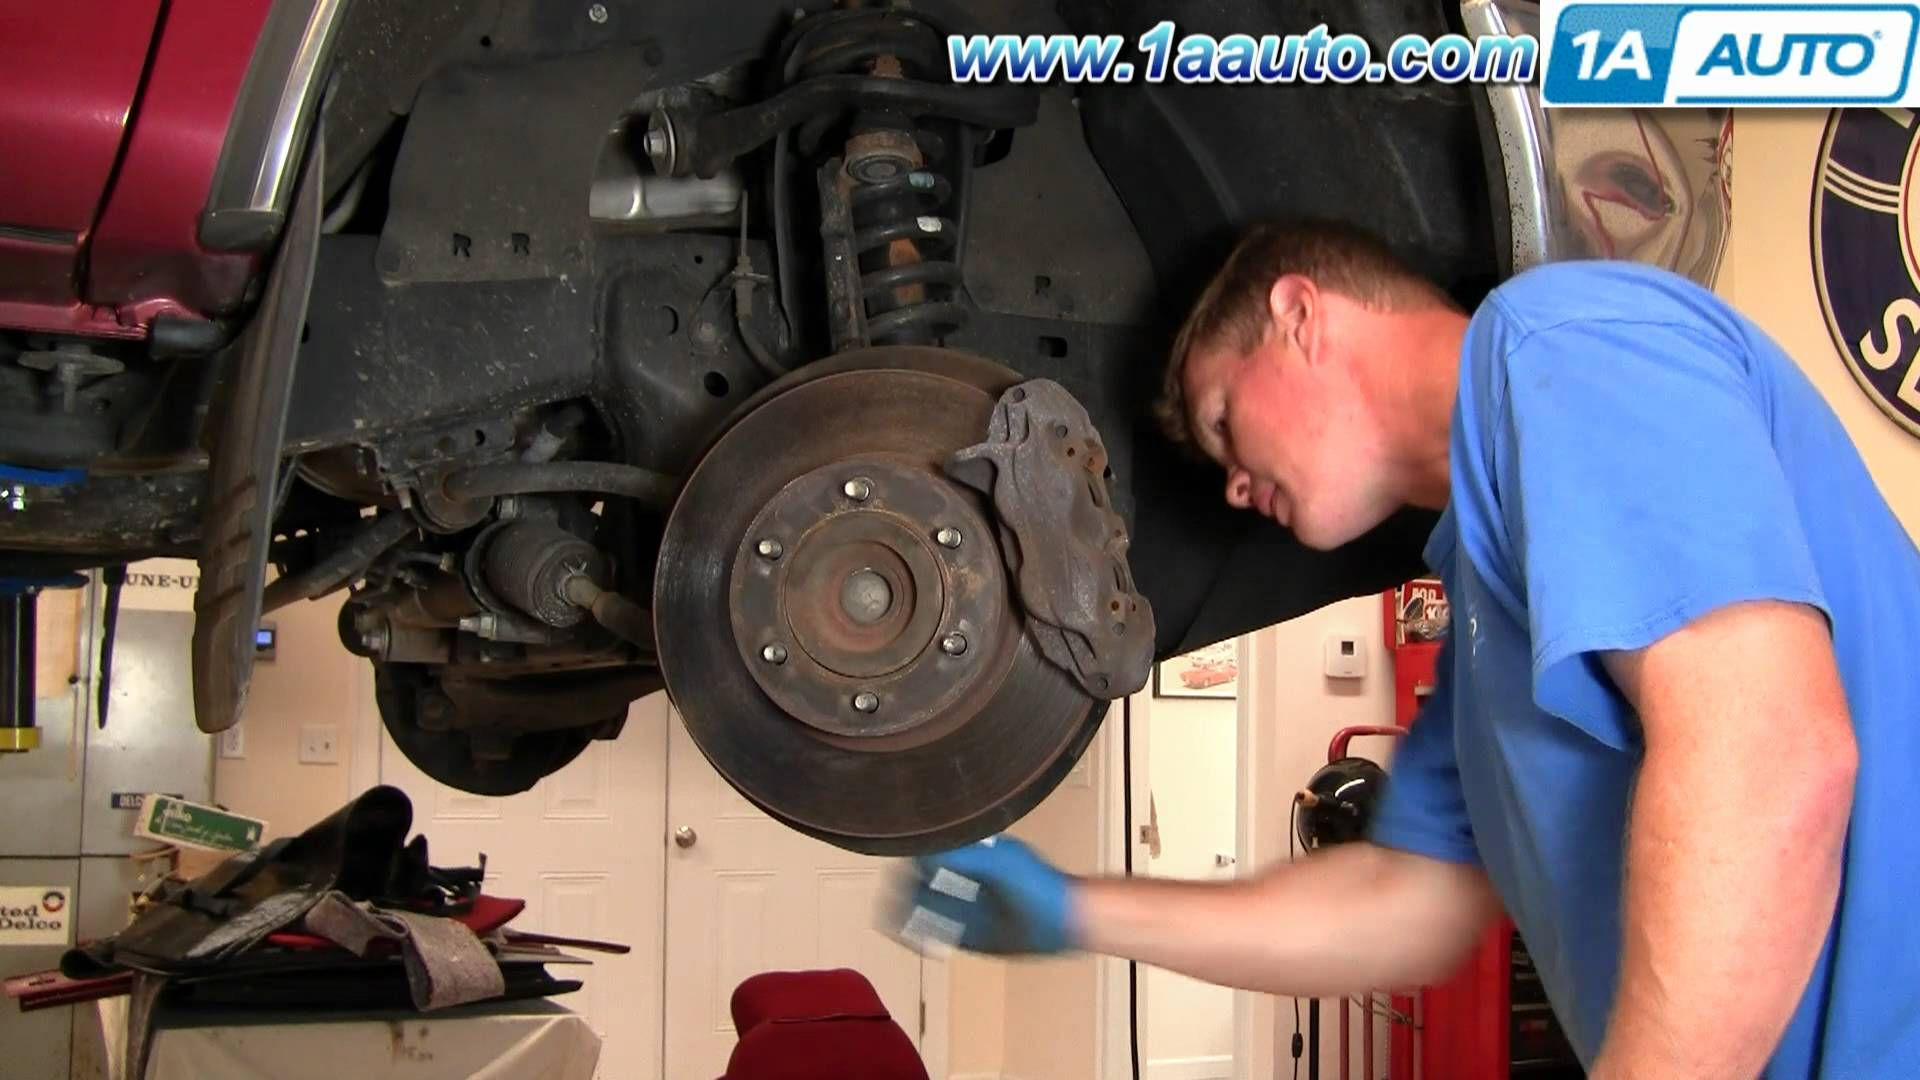 Http strictlyforeign biz how to install replace front brake rotors toyota